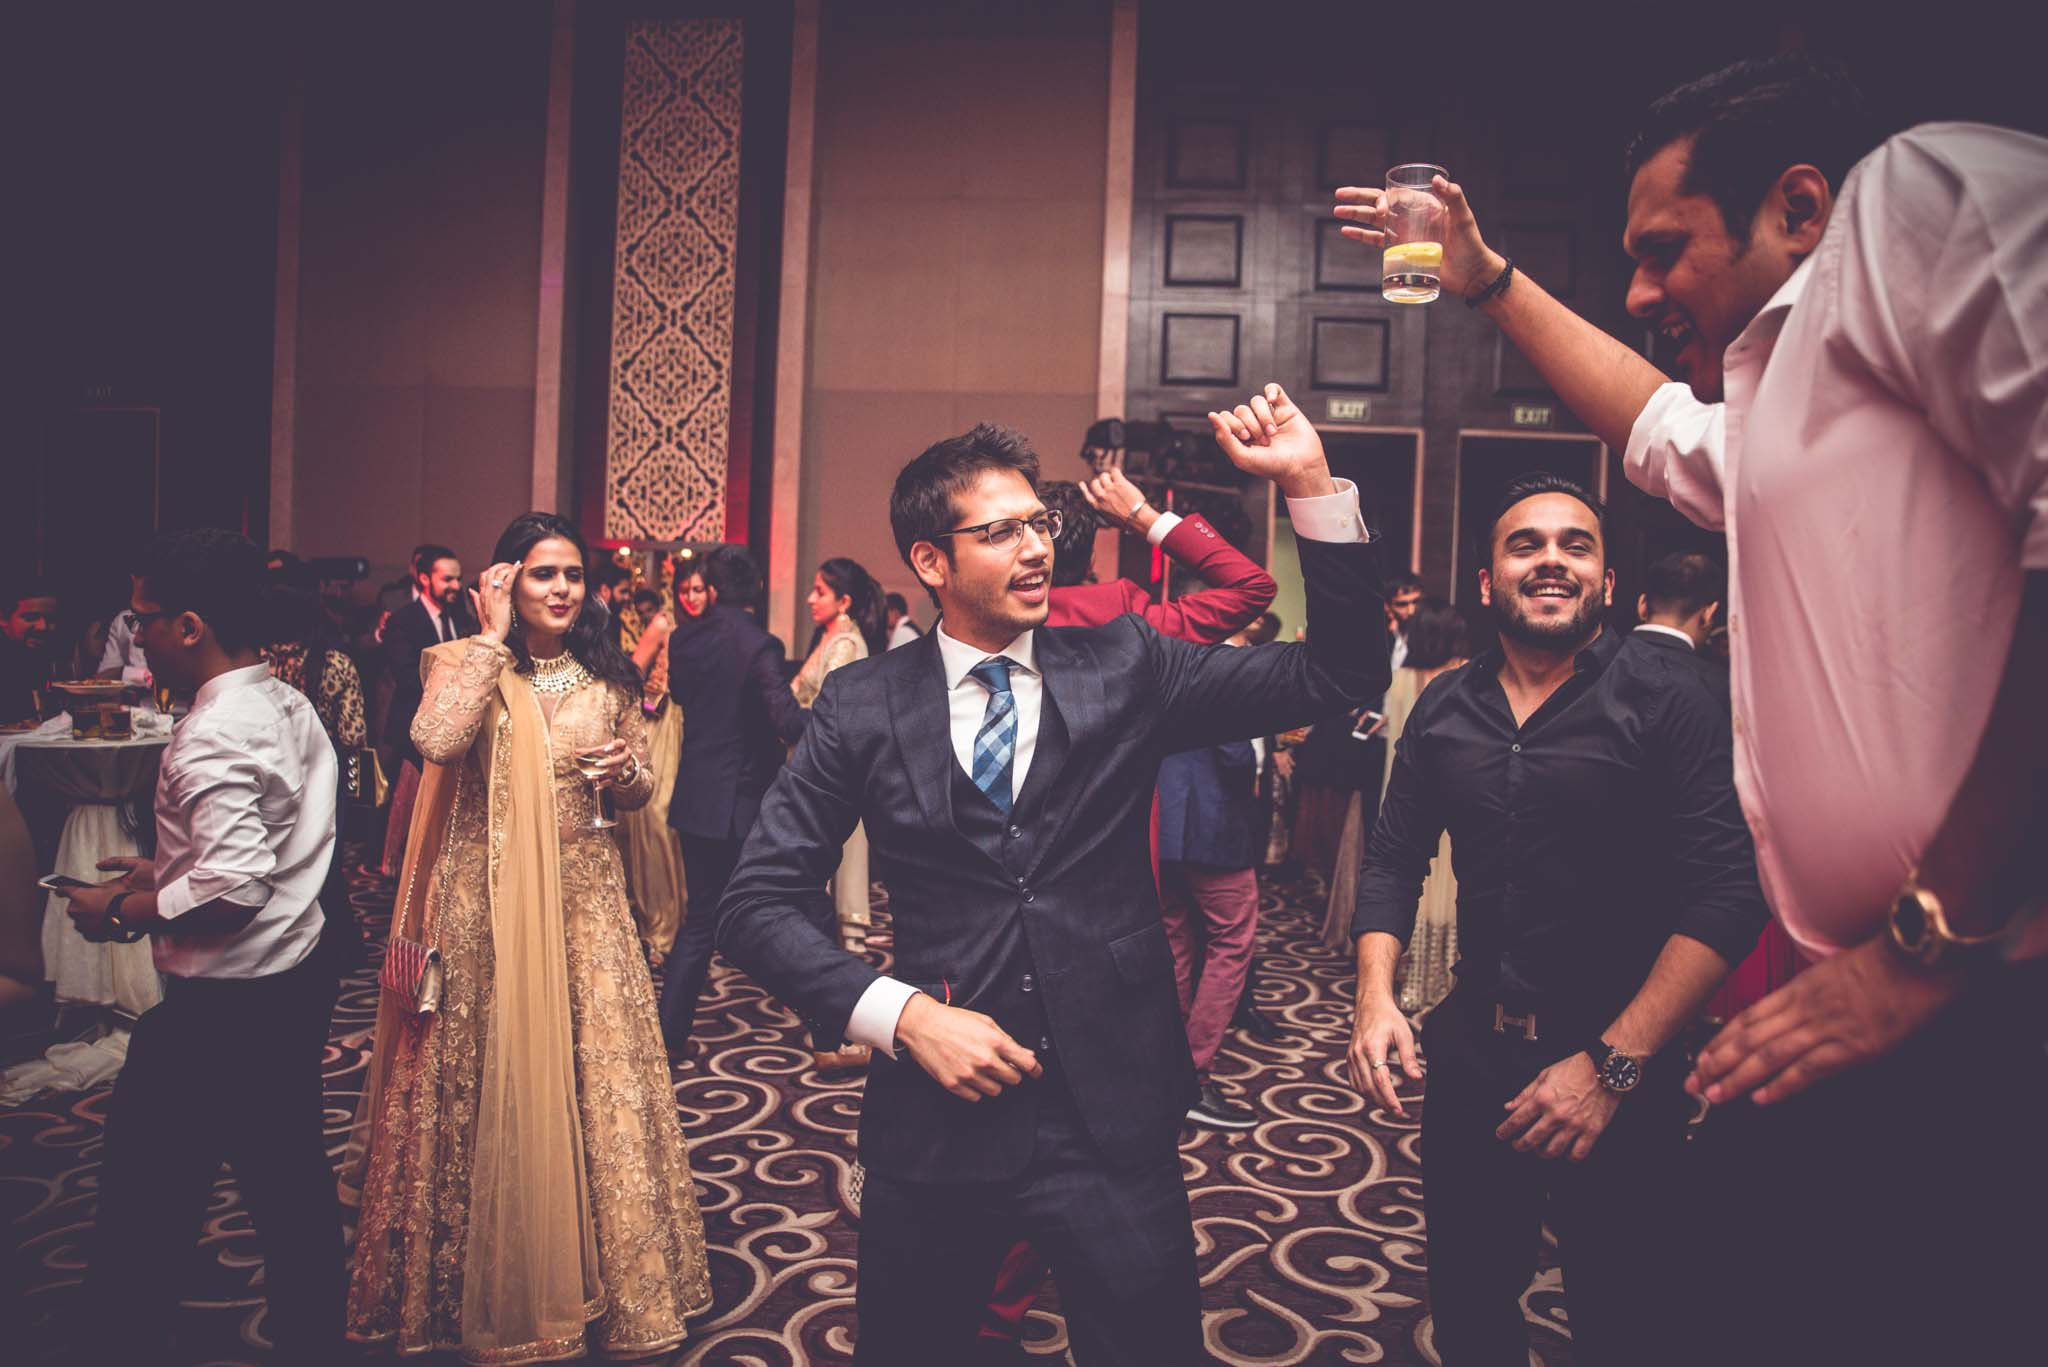 StRegis-Palladium-Mumbai-Candid-Wedding-Photography-84